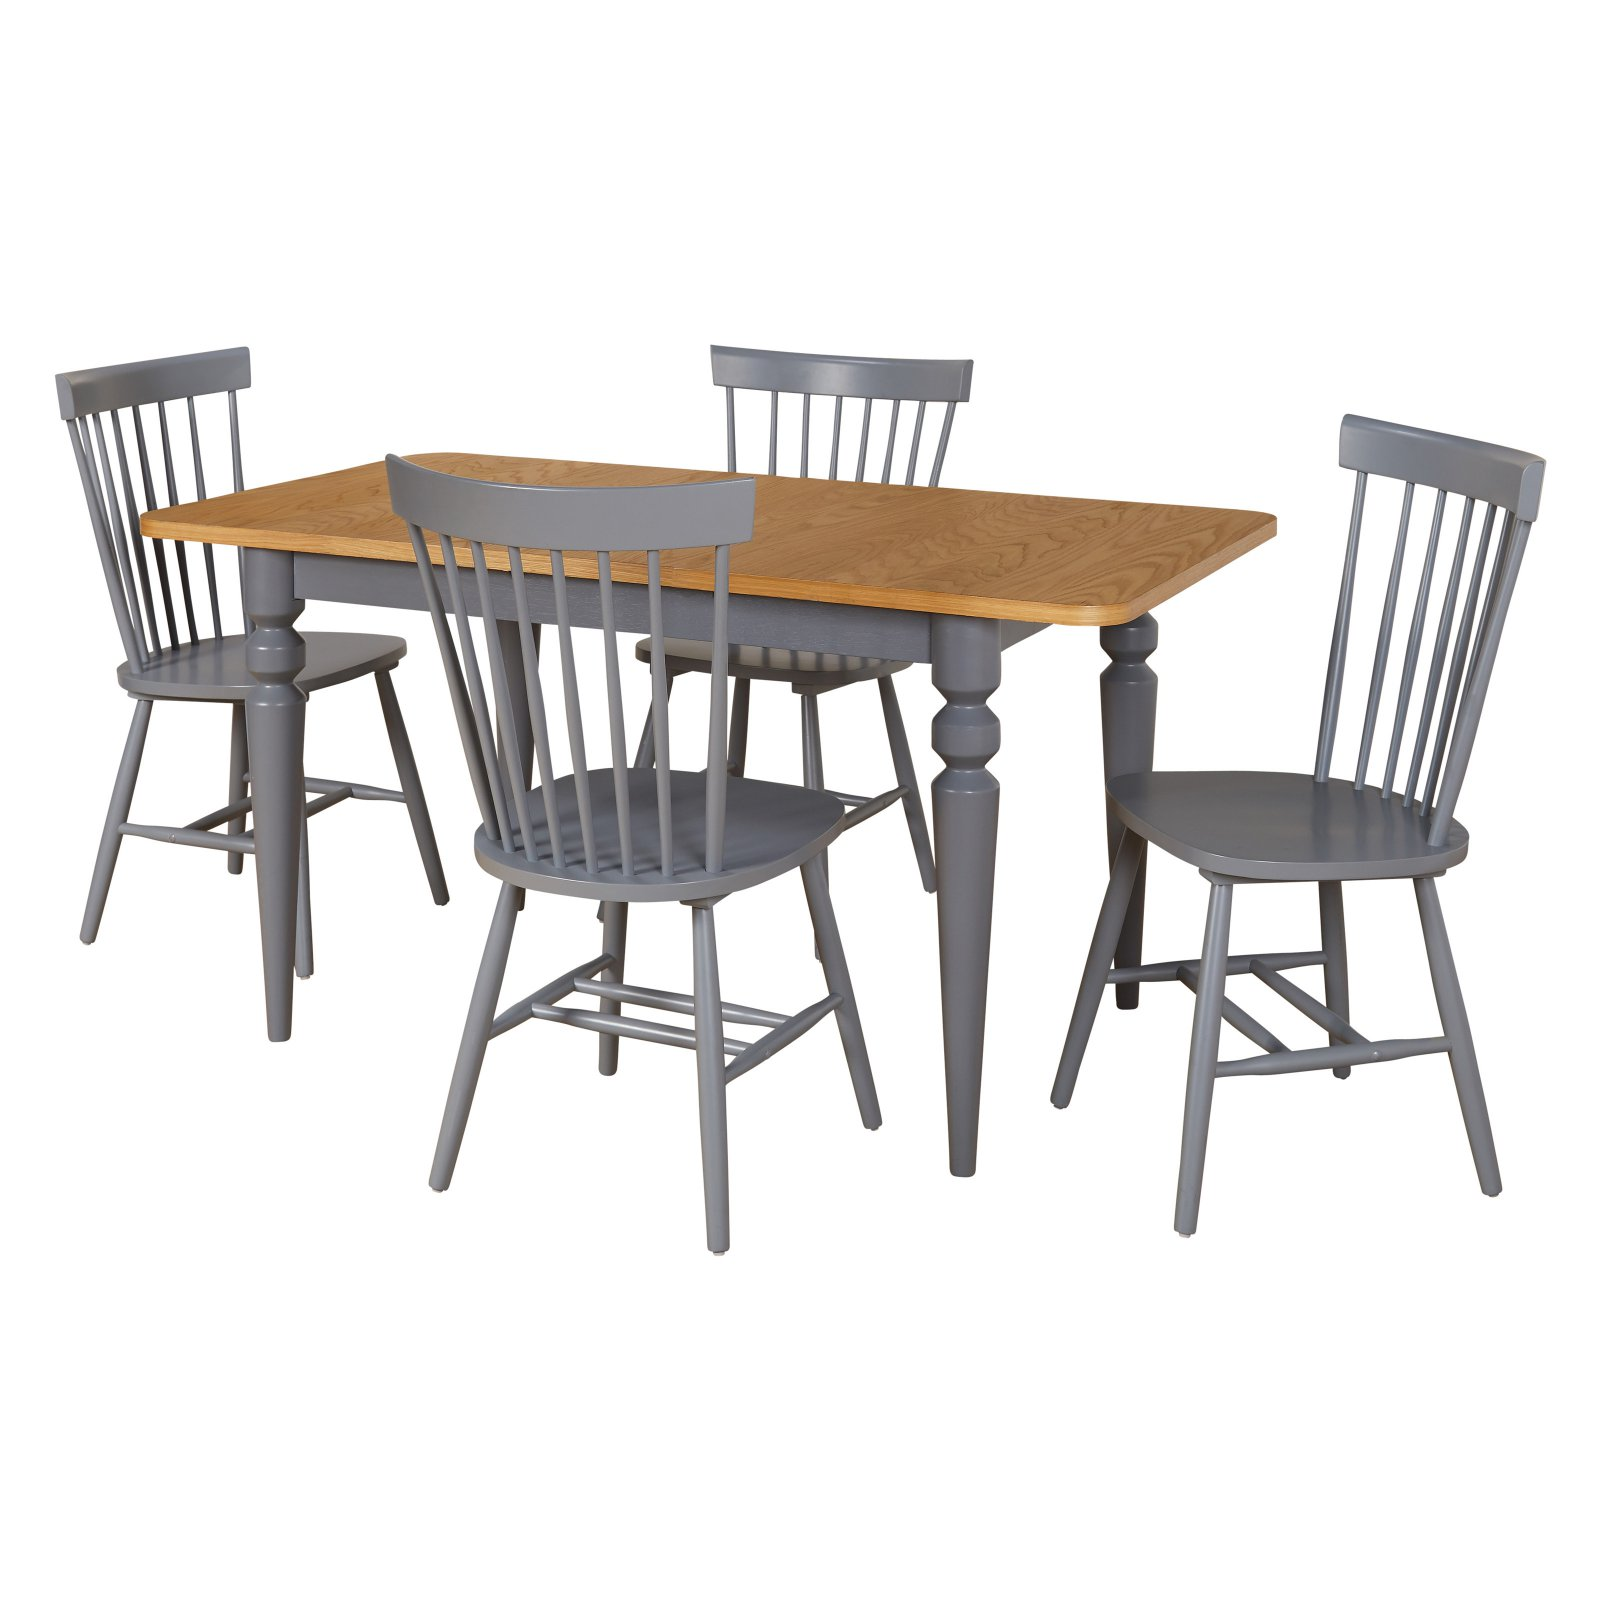 Target Marketing Systems Pranzo 5 Piece Dining Table Set